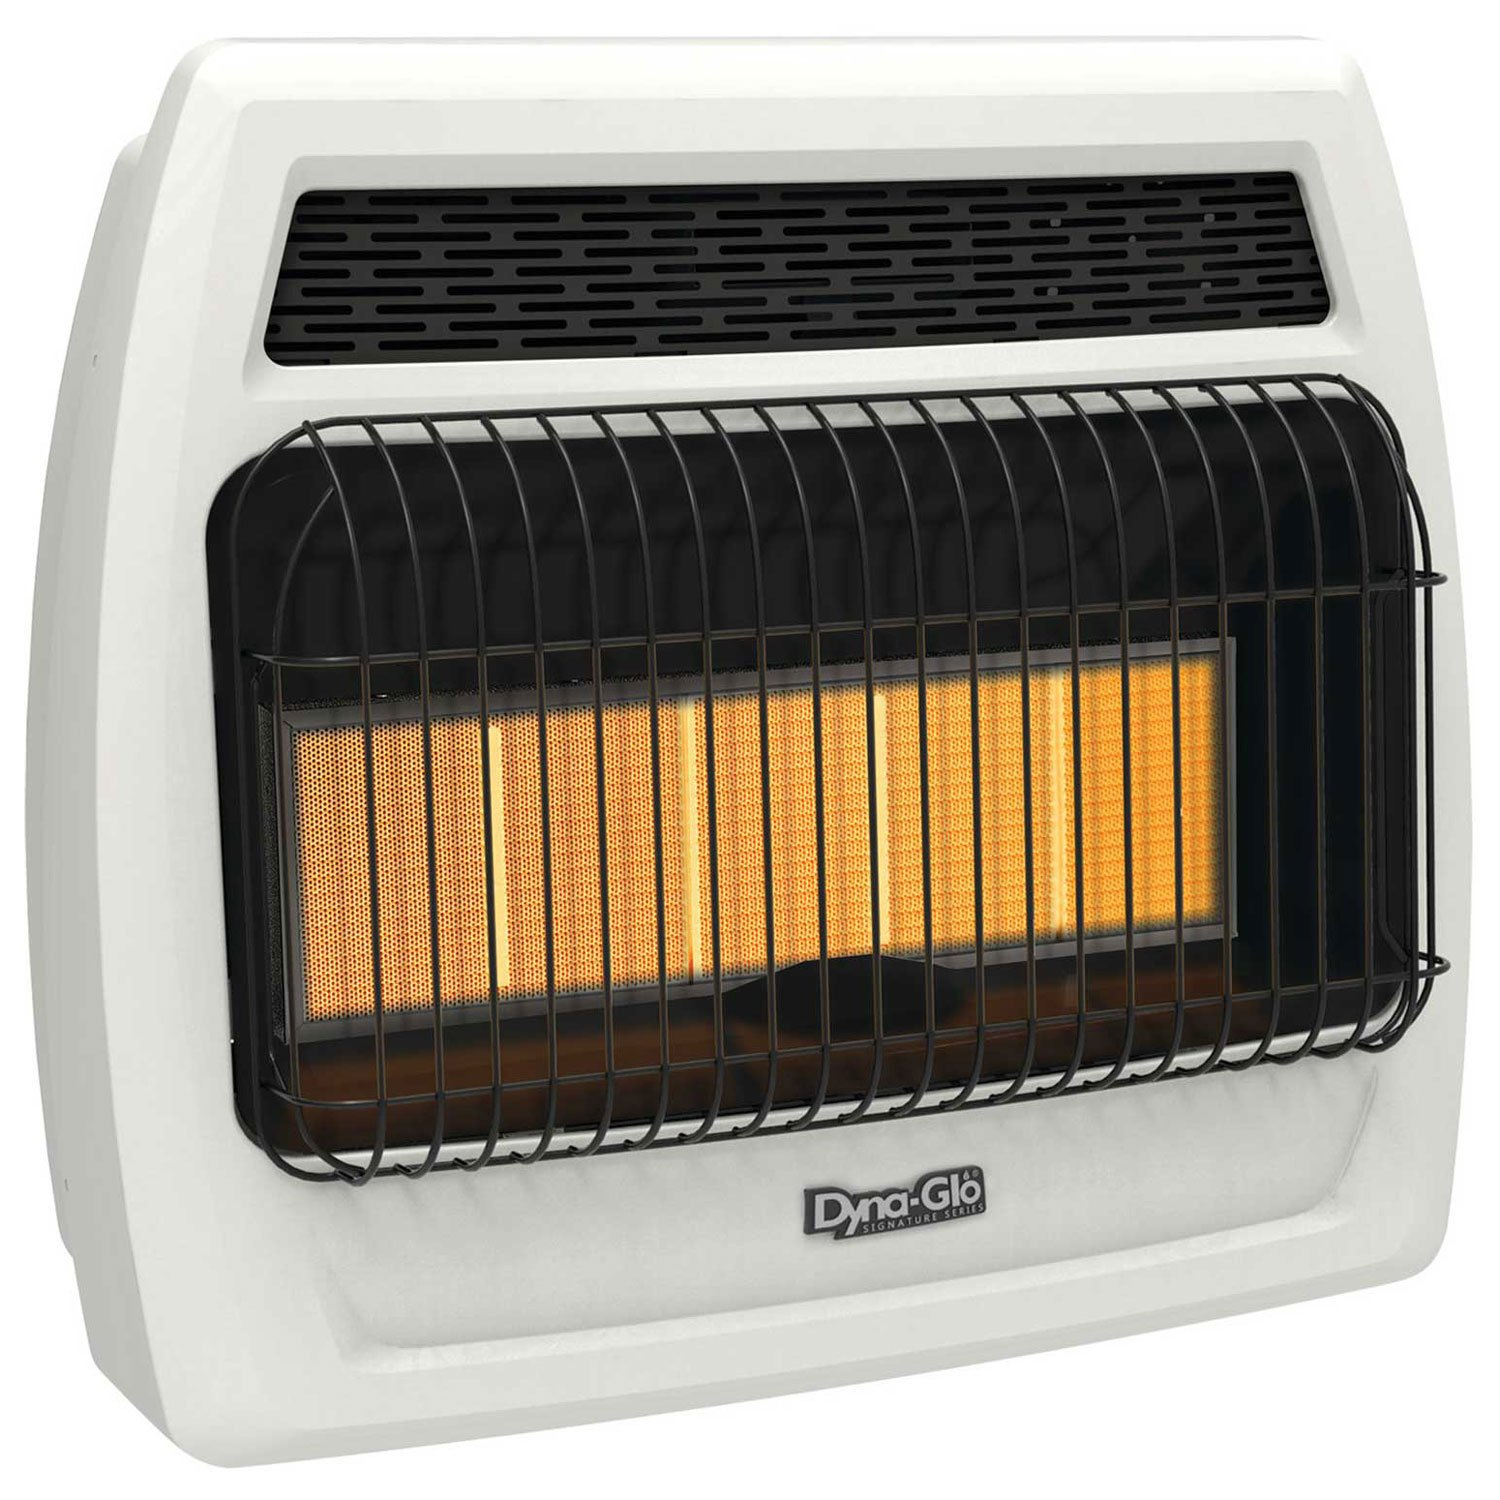 Dyna-Glo IRSS30NGT-2N 30000 BTU NG Infrared Vent Free T-stat Wall Heater